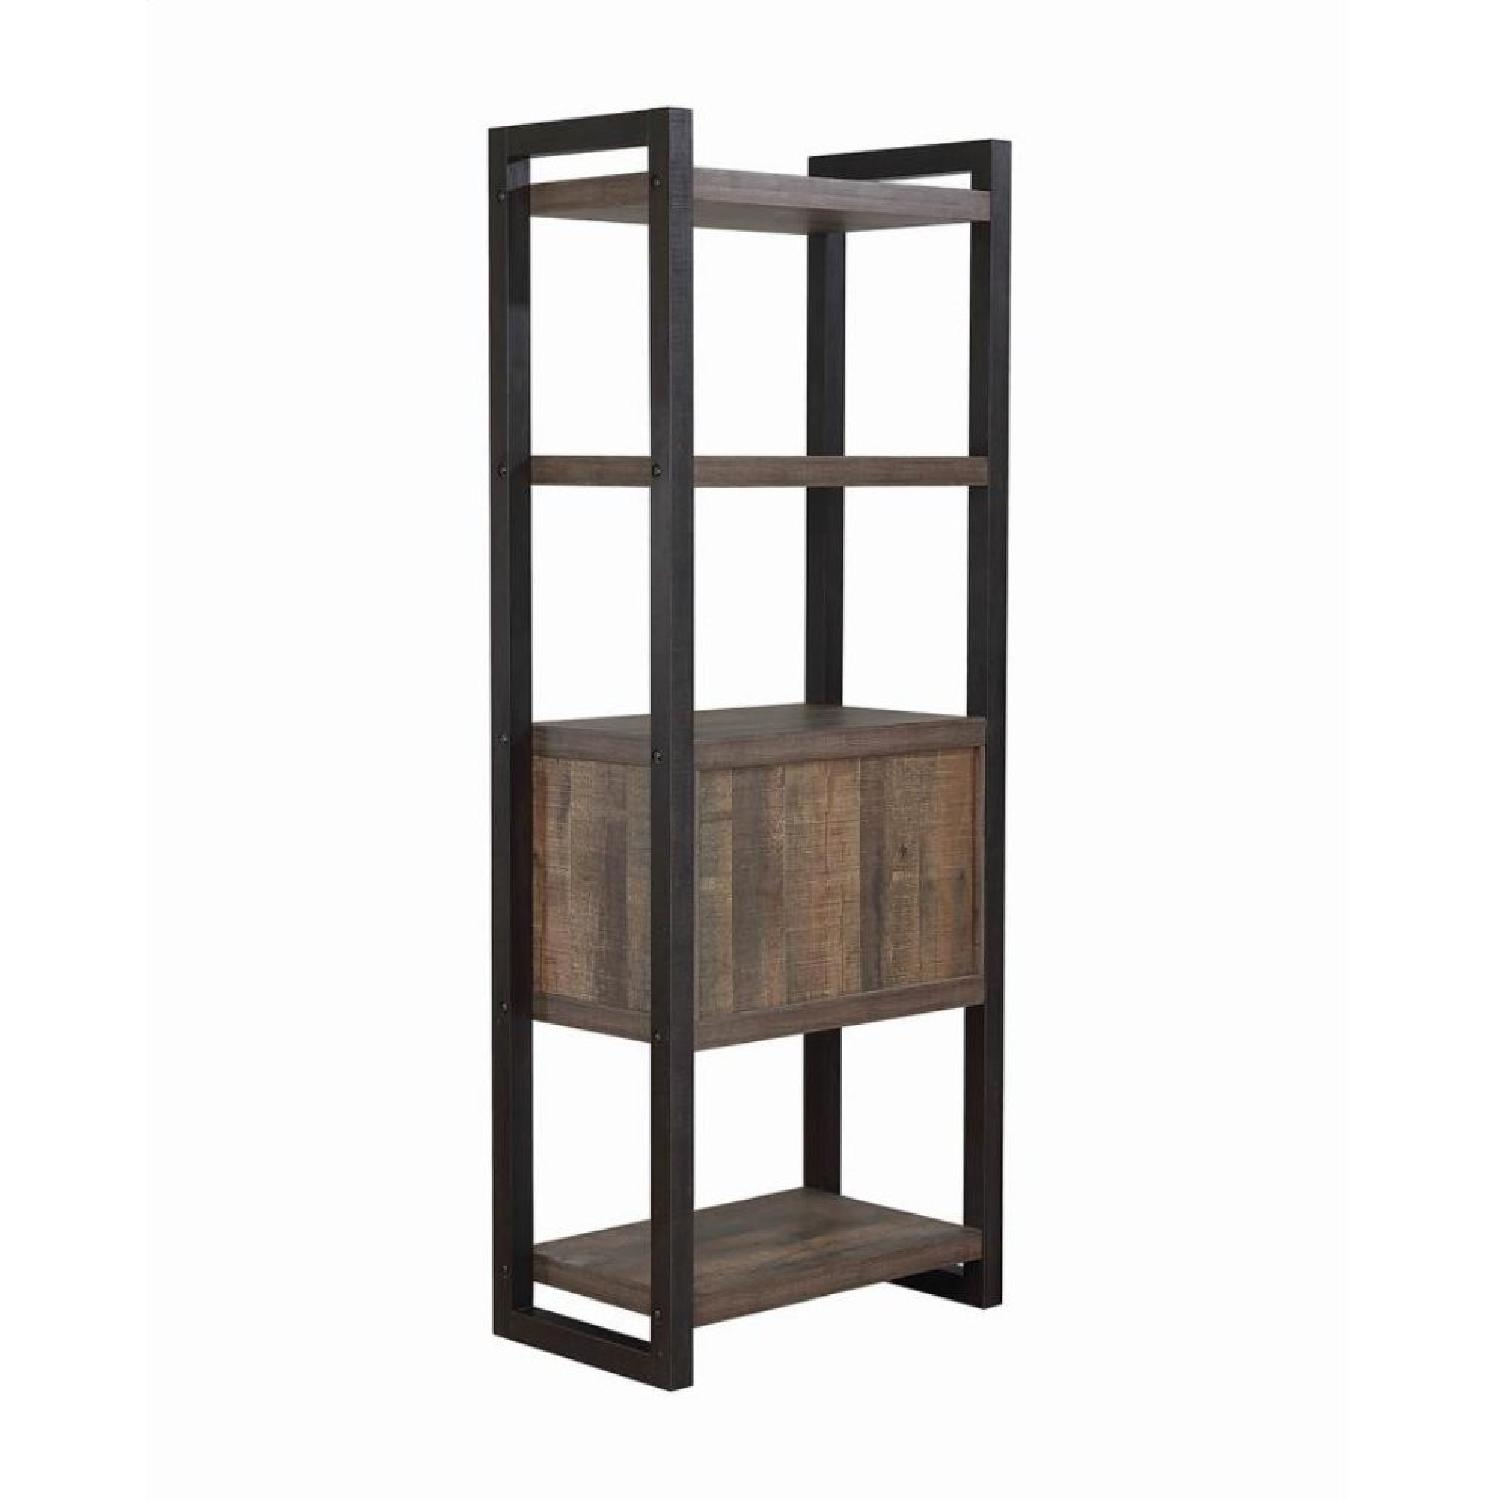 Natural Rustic Coffee Bookcase w/ Cabinet - image-4